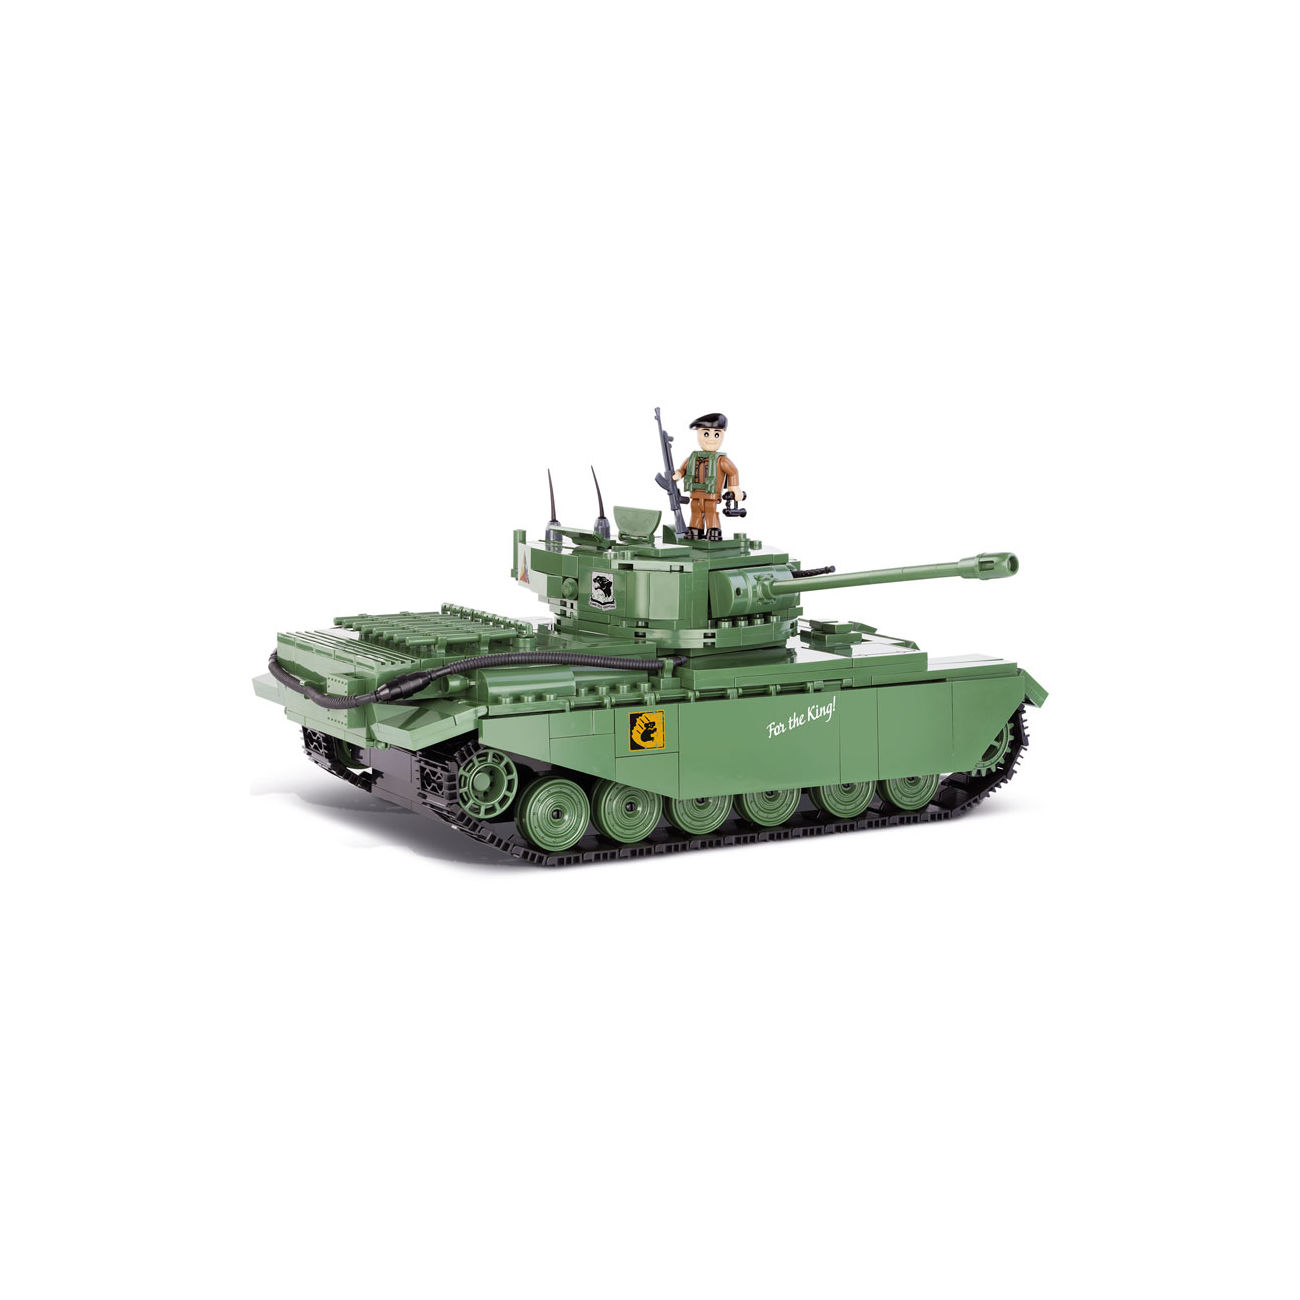 Cobi World Of Tanks Roll Out Small Army Bausatz Panzer Centurion I 610 Teile 3010 1